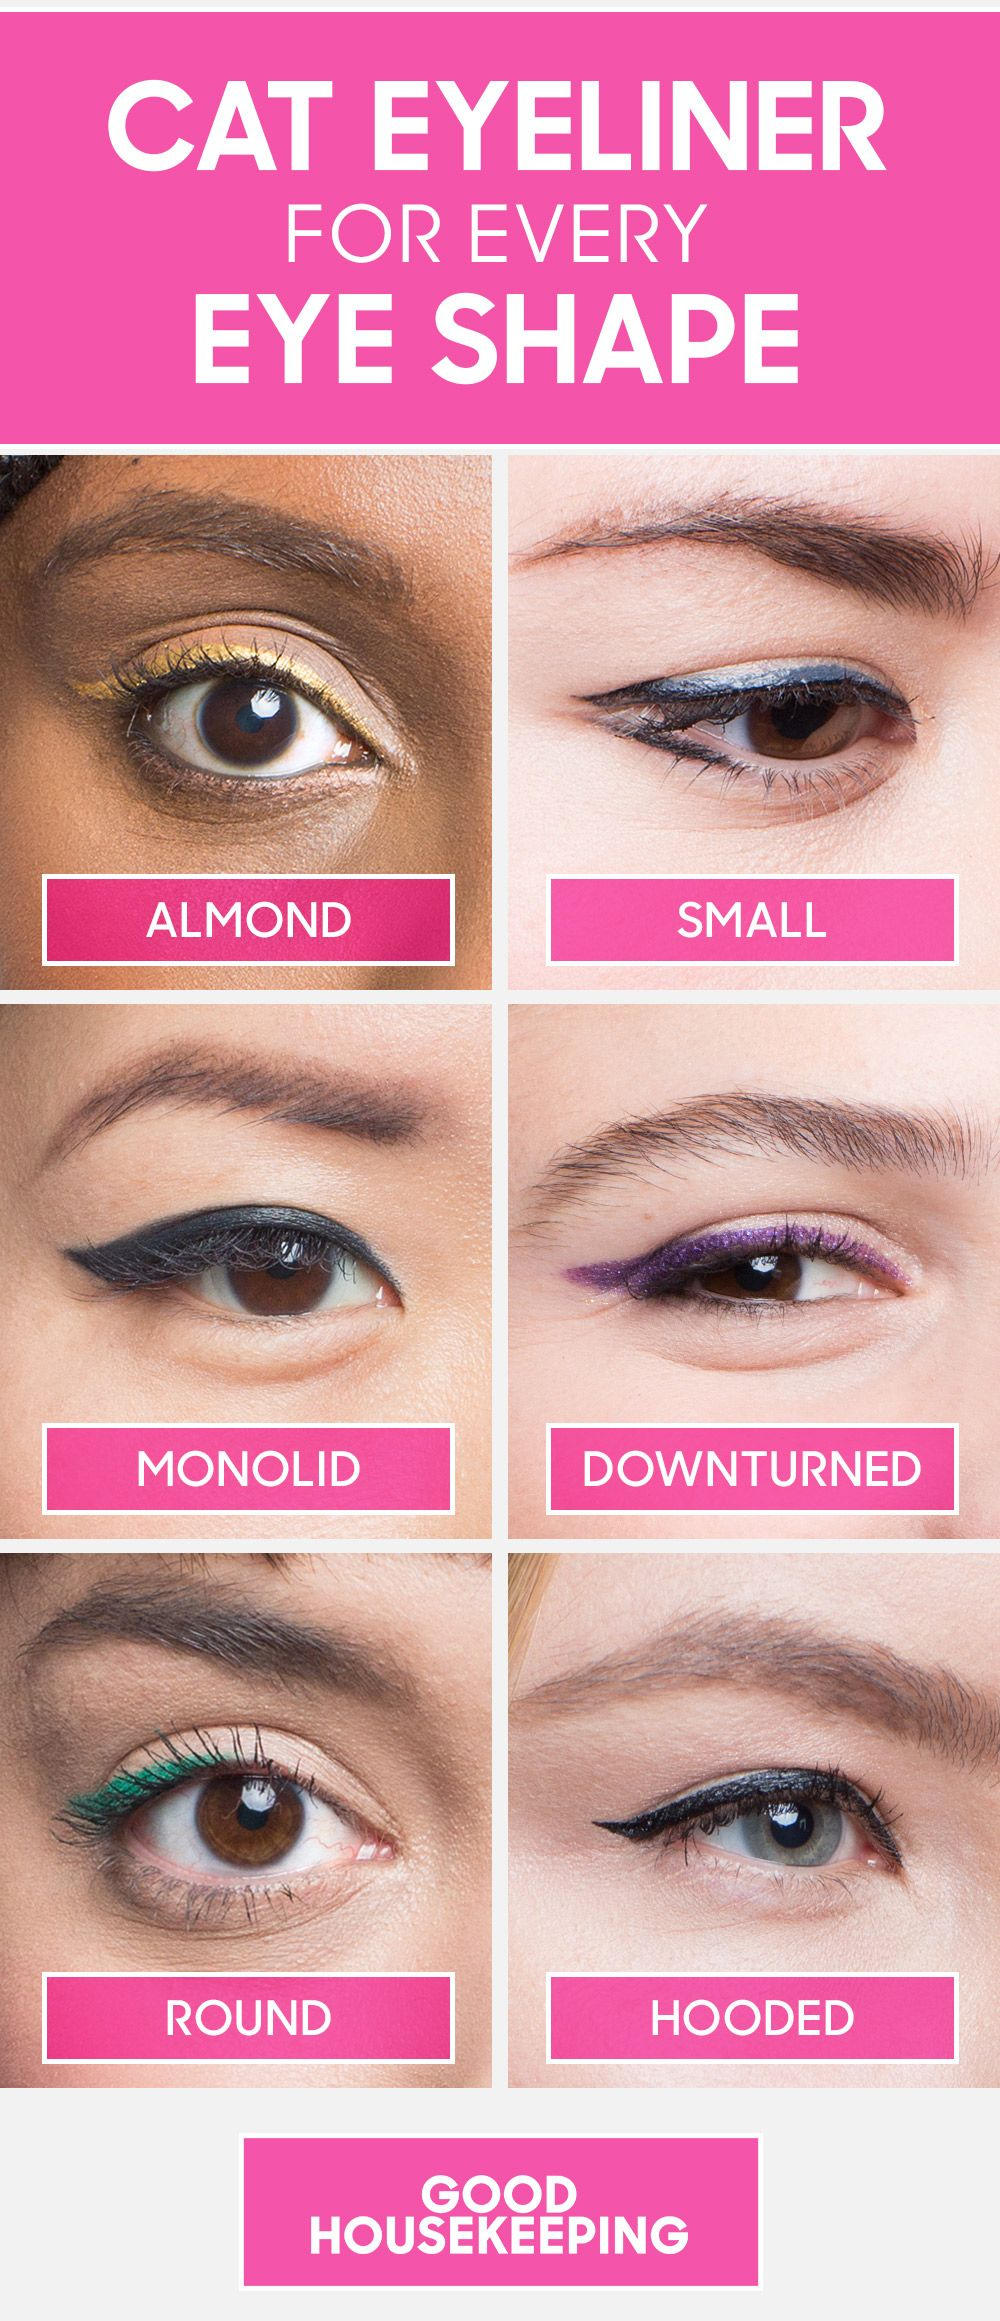 Winged Eyeliner Application Is Different For Every Eye Shape